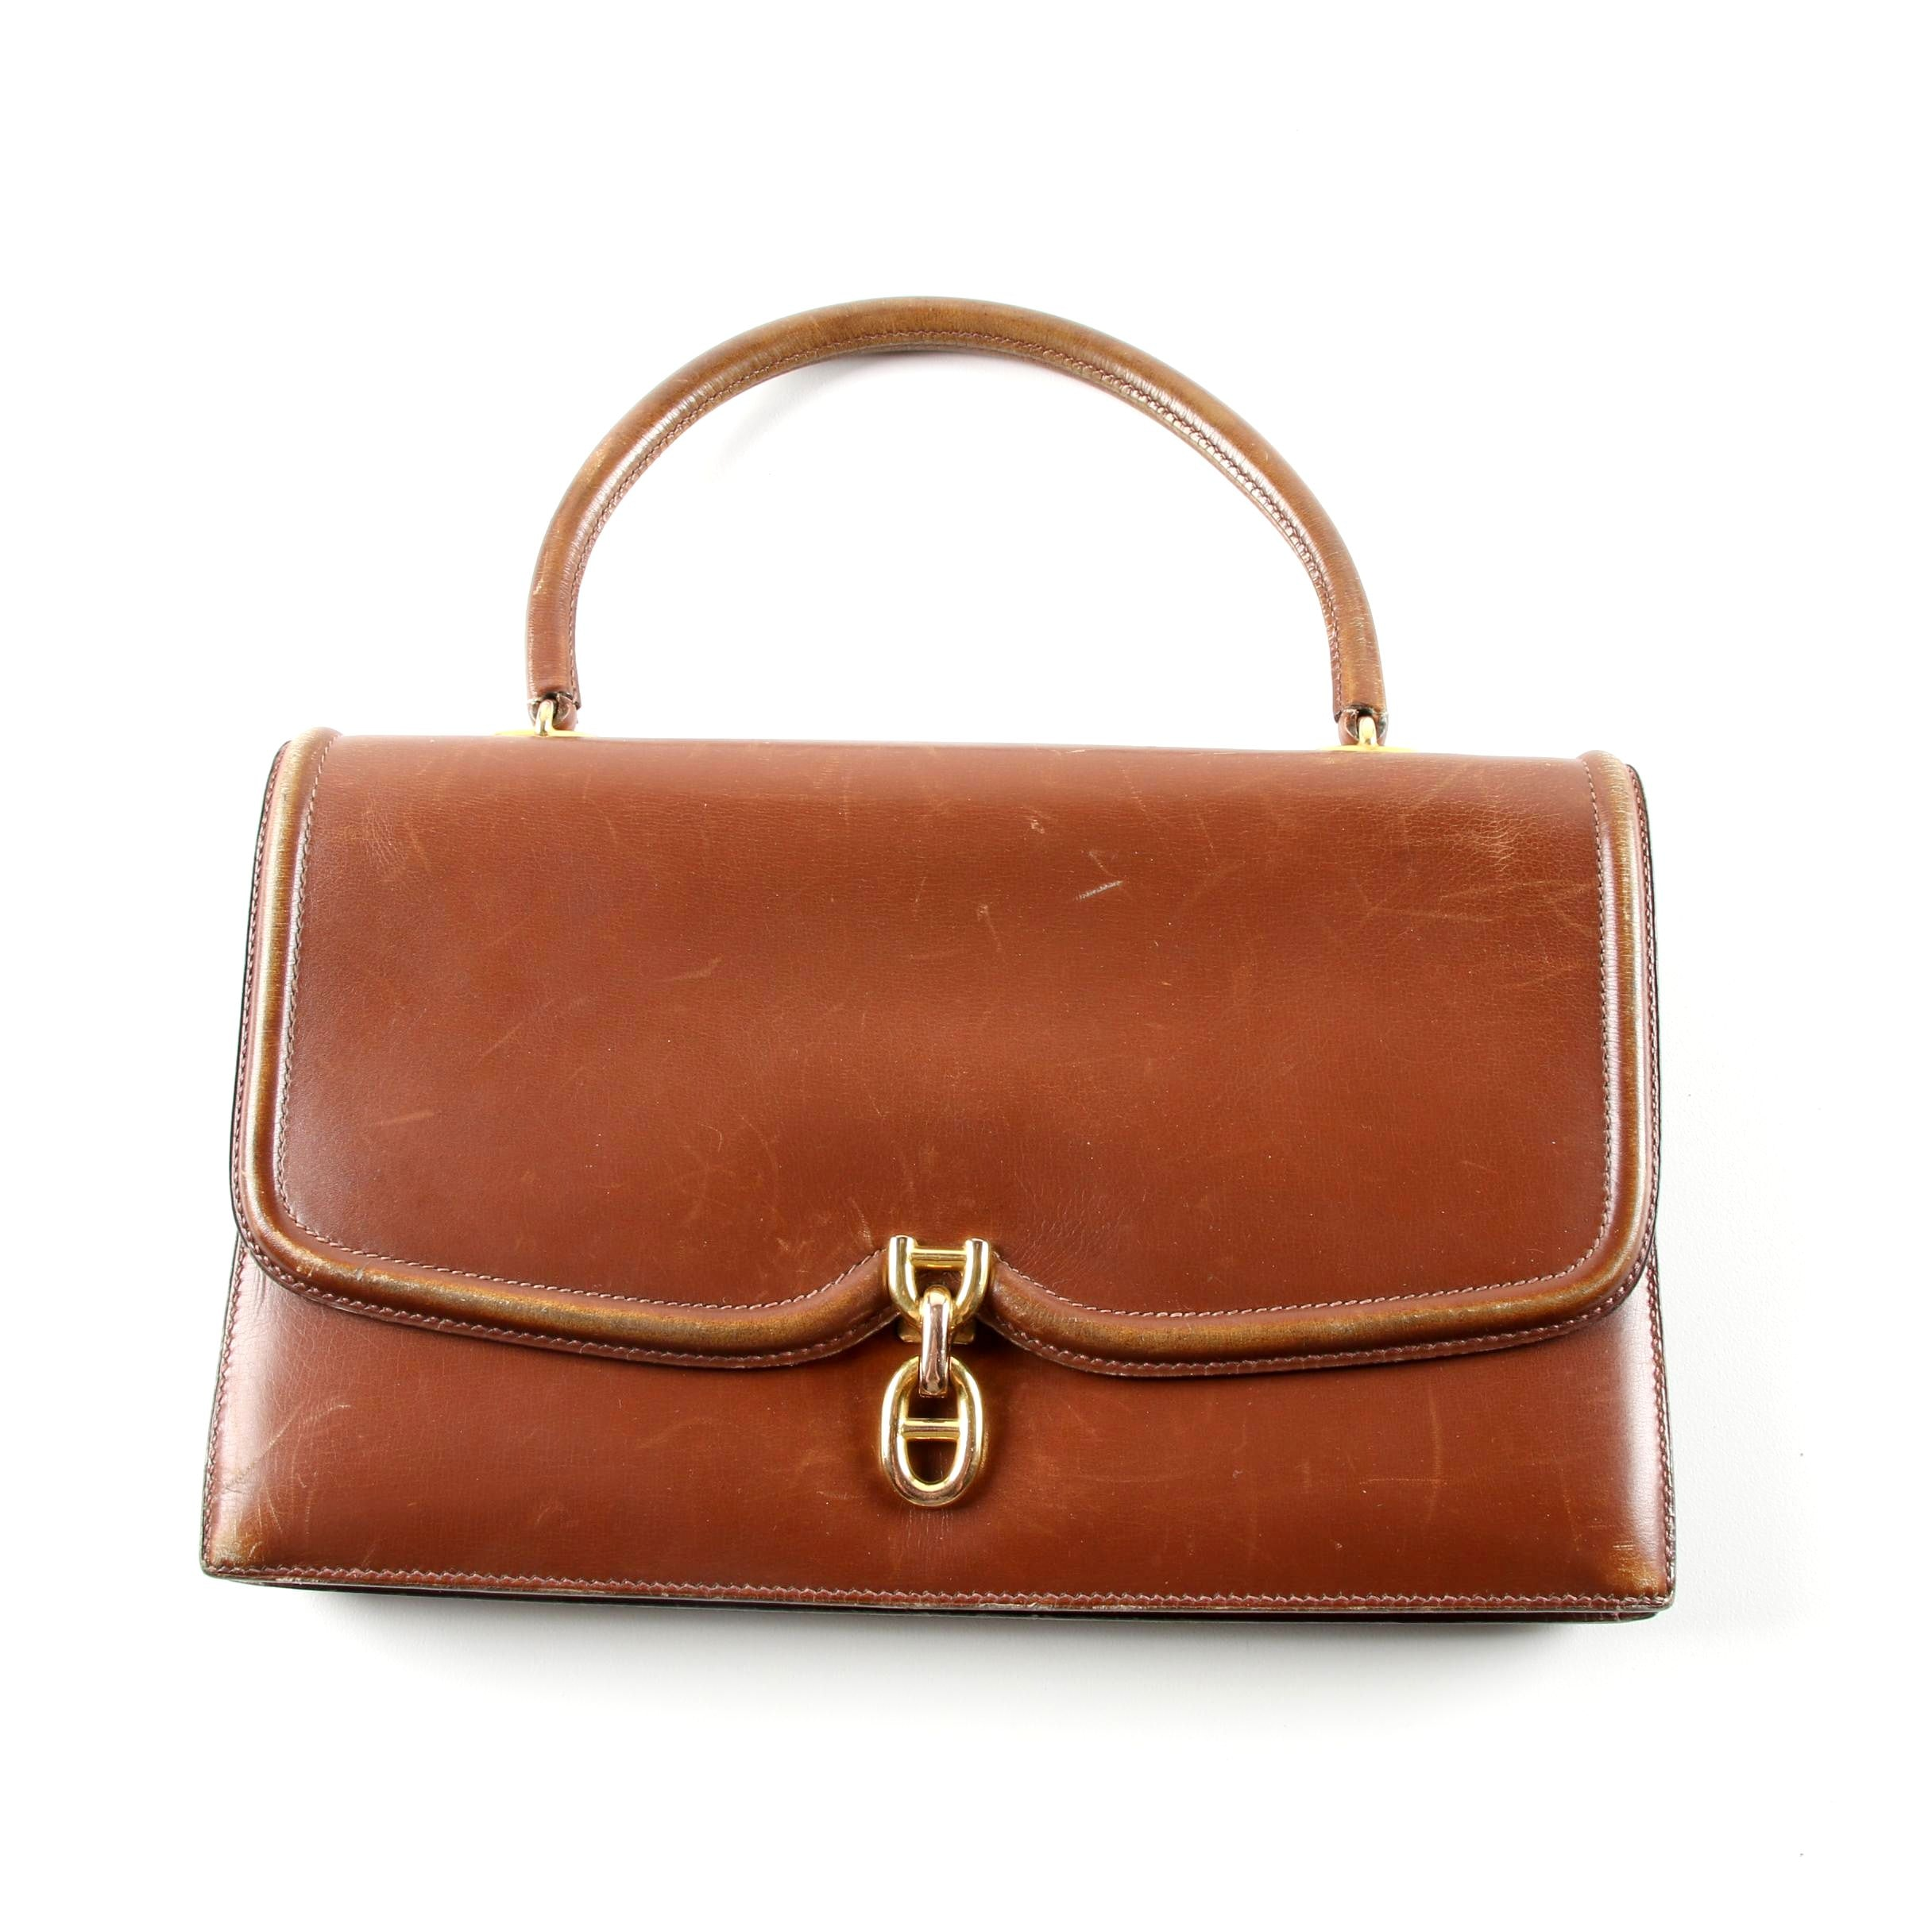 Hermès Brown Box Calf Leather Handbag